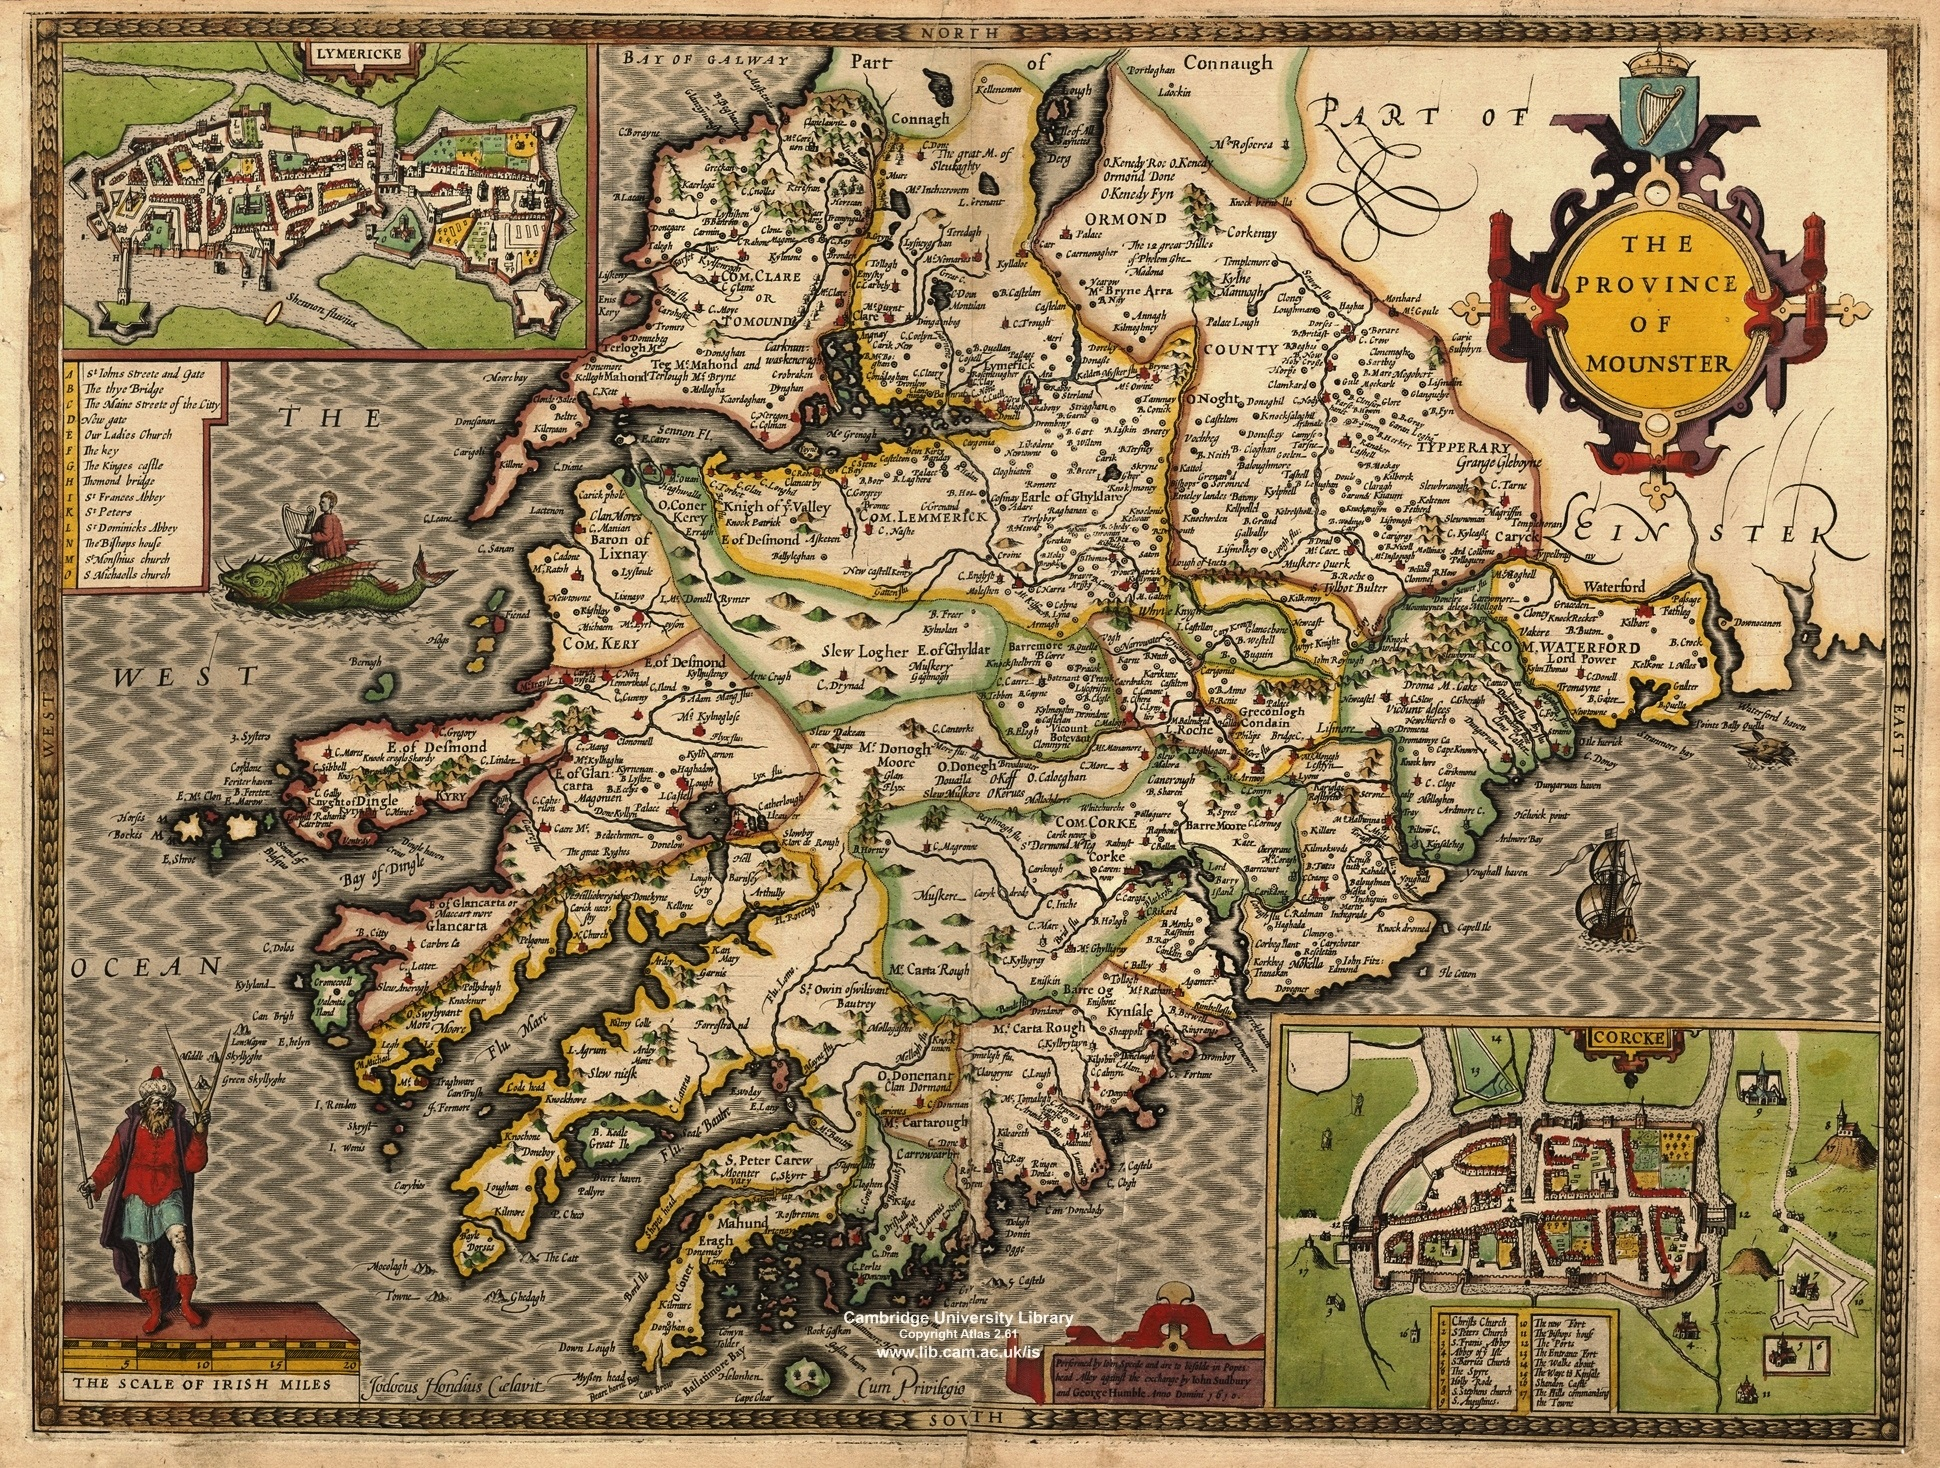 Maps and atlases of ireland taylor and skinners maps of the roads of ireland 1783 p w joyce county cork baronies ca 1905 gumiabroncs Image collections